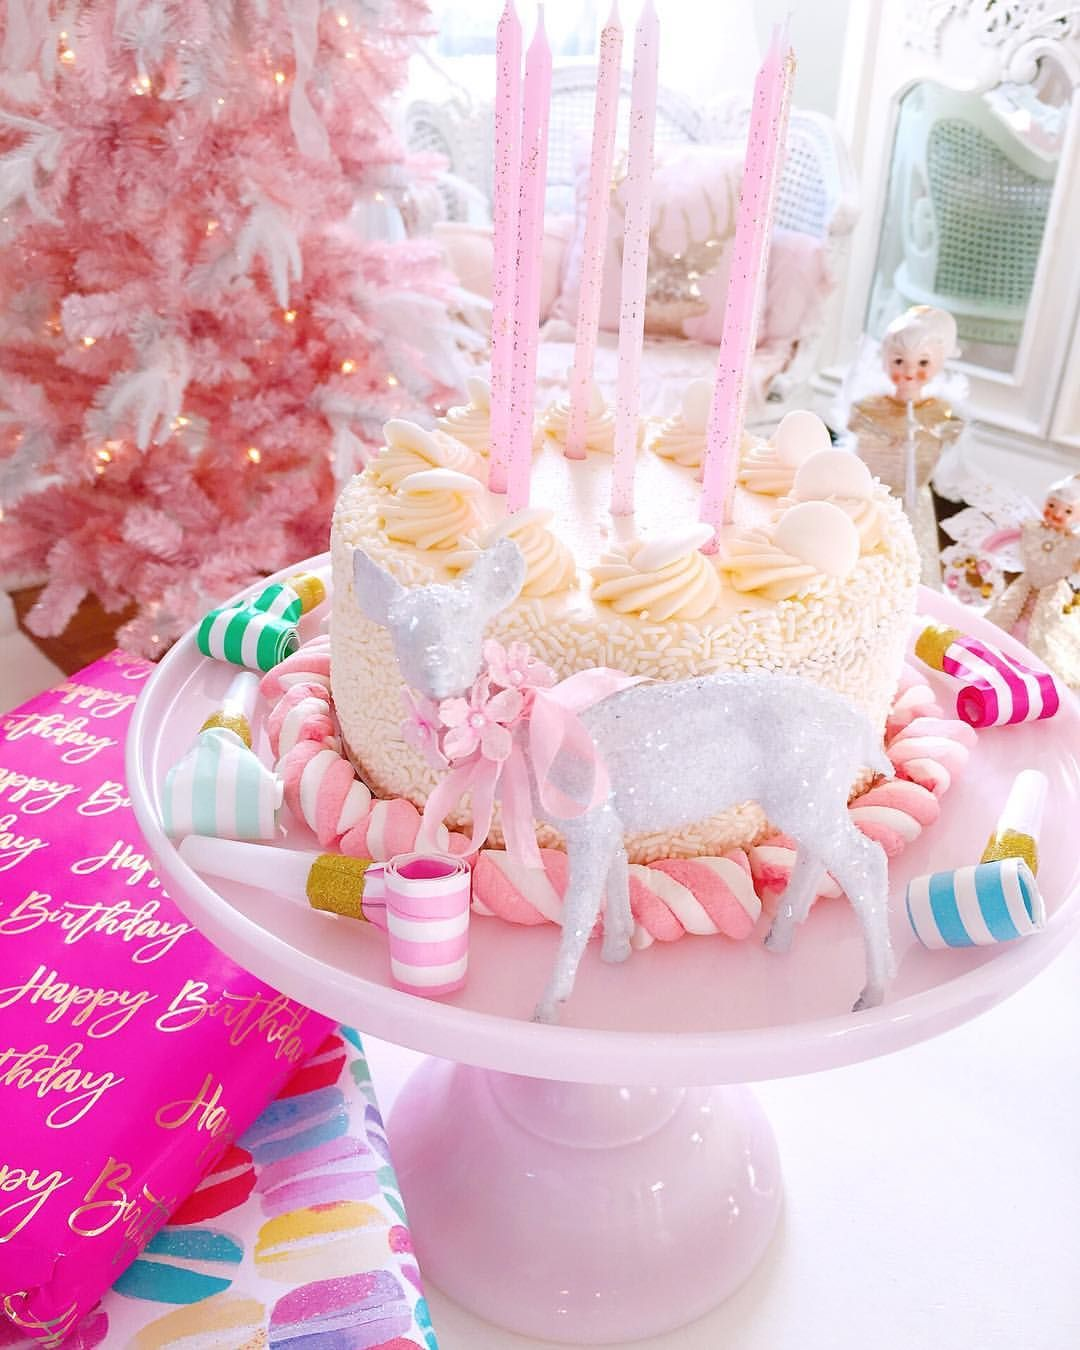 A Special Birthday Cake For My Beautiful Friend Smfolsom Whos